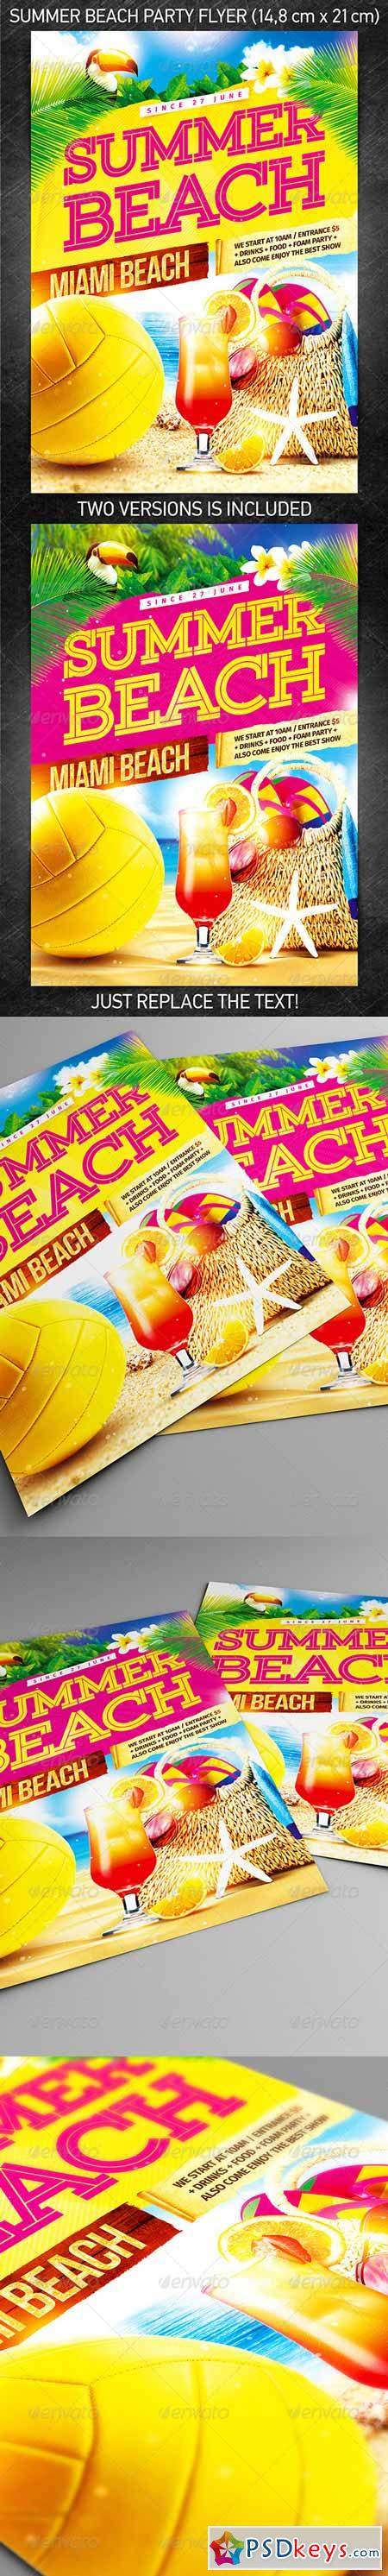 party page 87 photoshop vector stock image via summer beach party flyer template 11538625